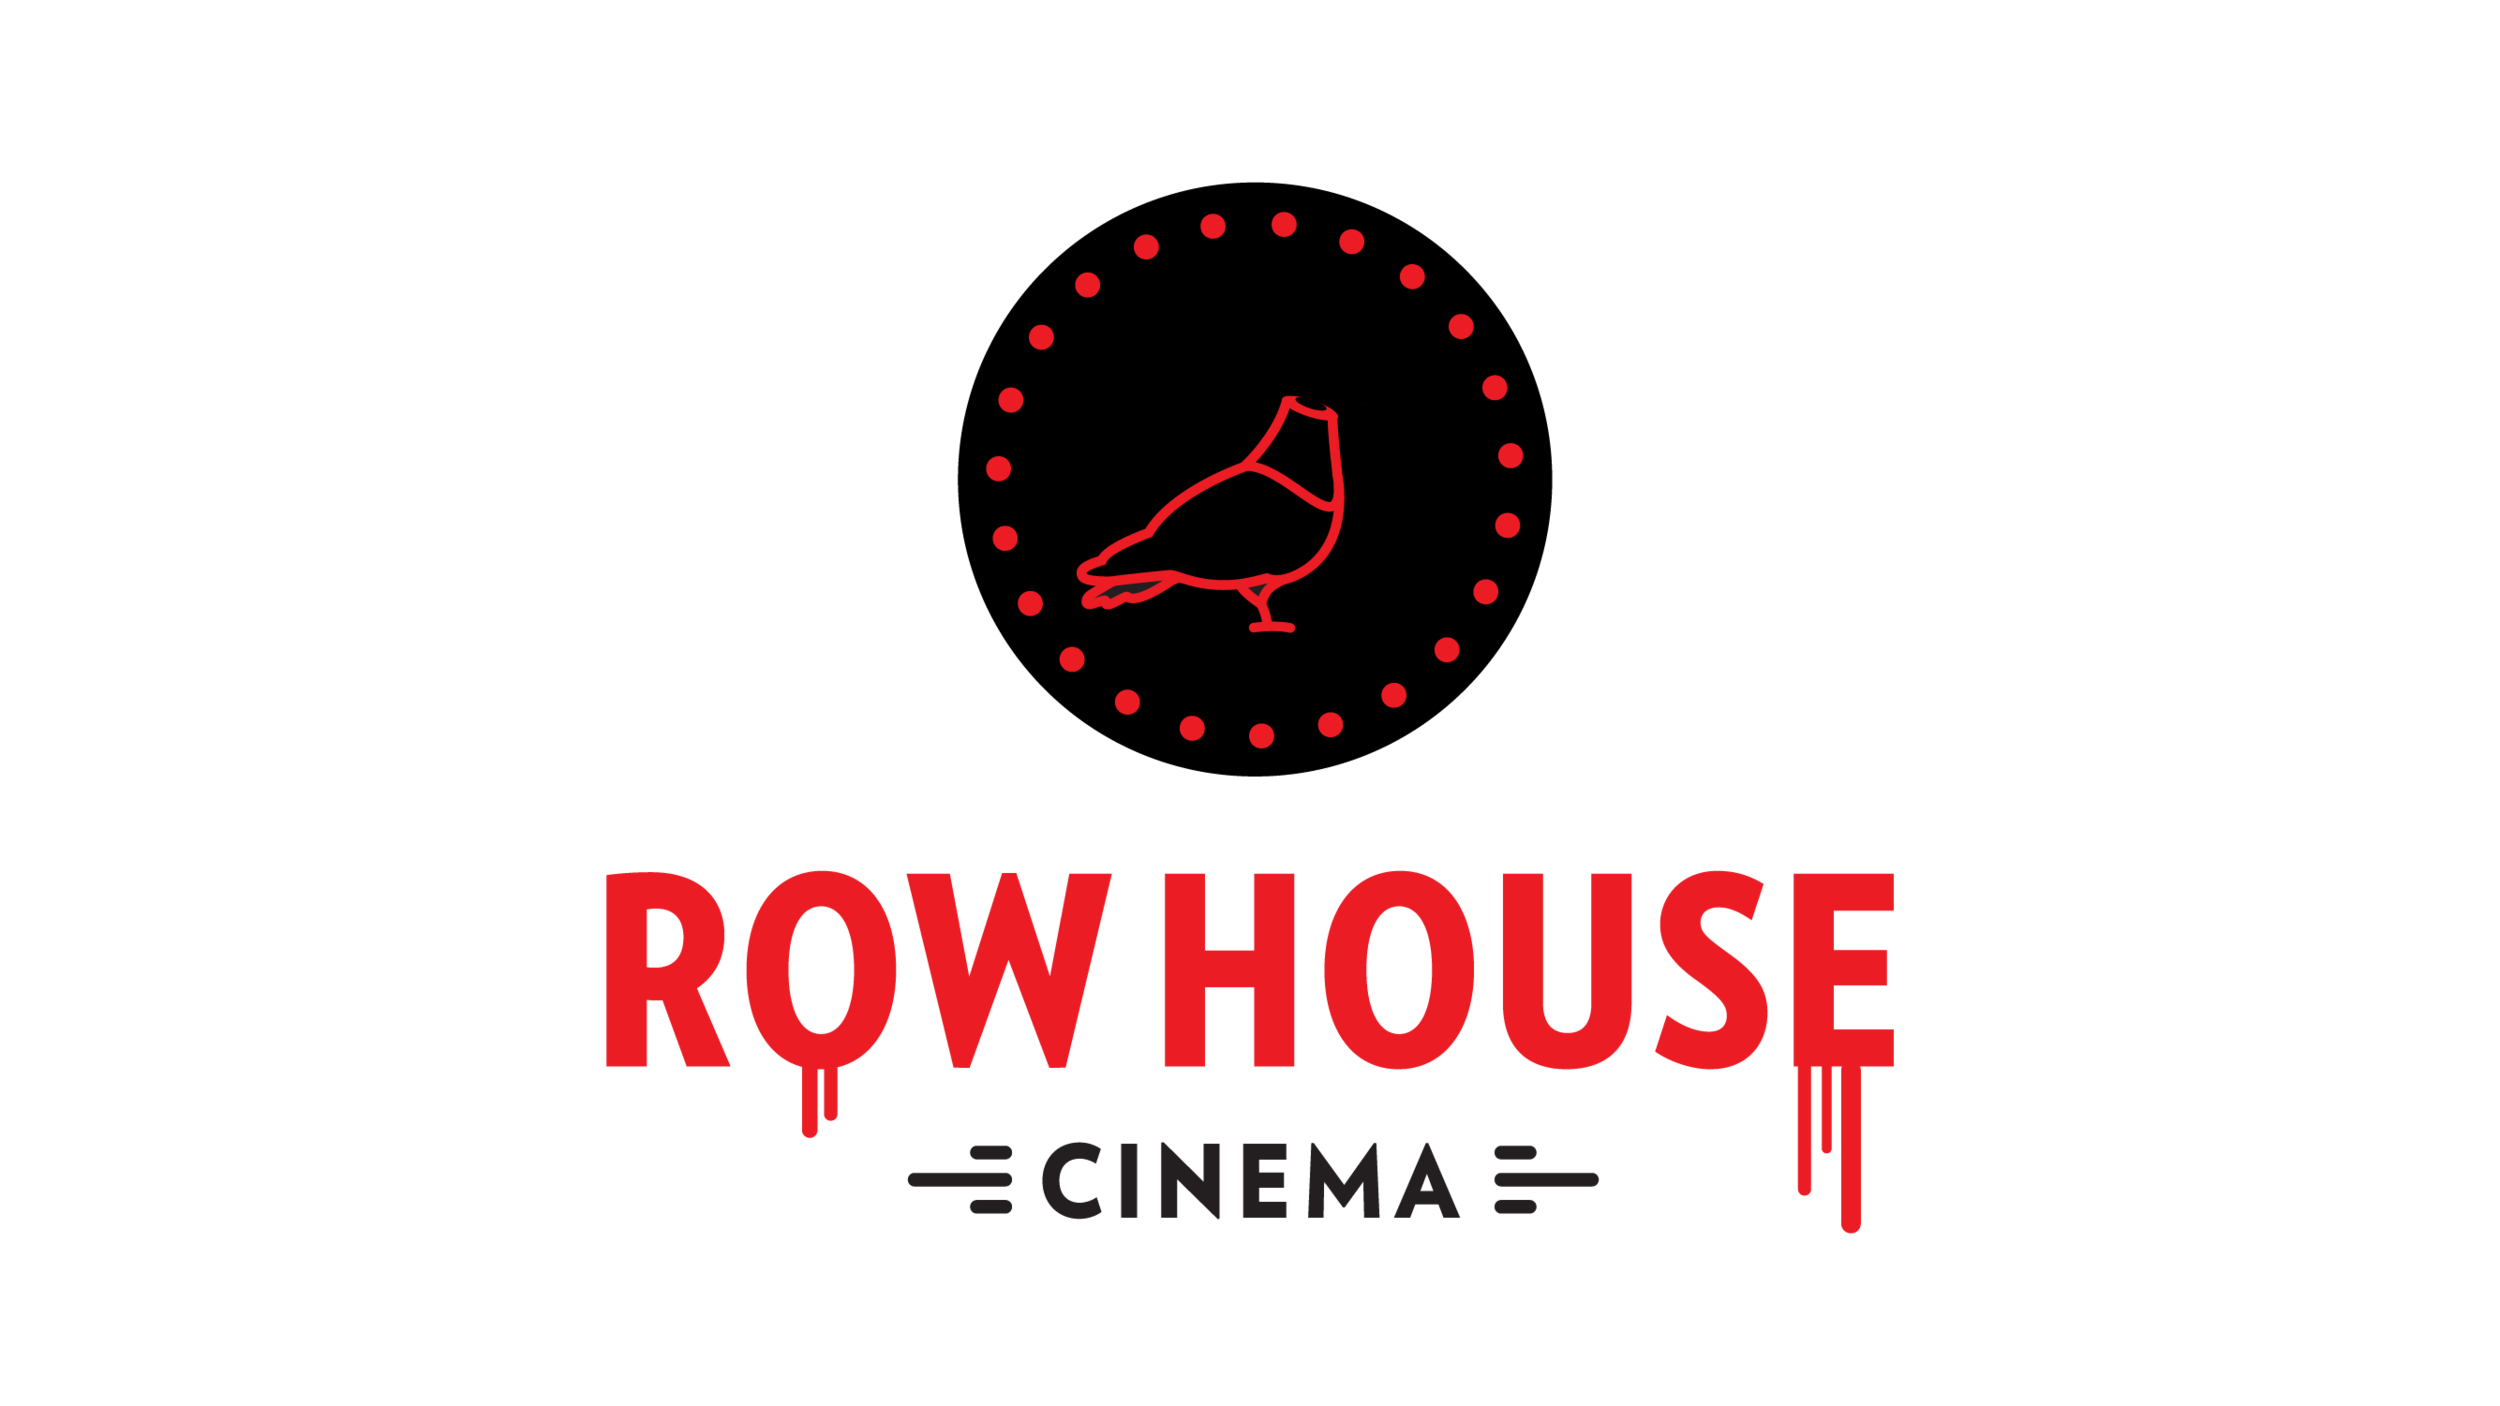 Arts-and-Culture_Special-Event-Branding_Row-House-Cinema_Bootstrap-Design-Co.png